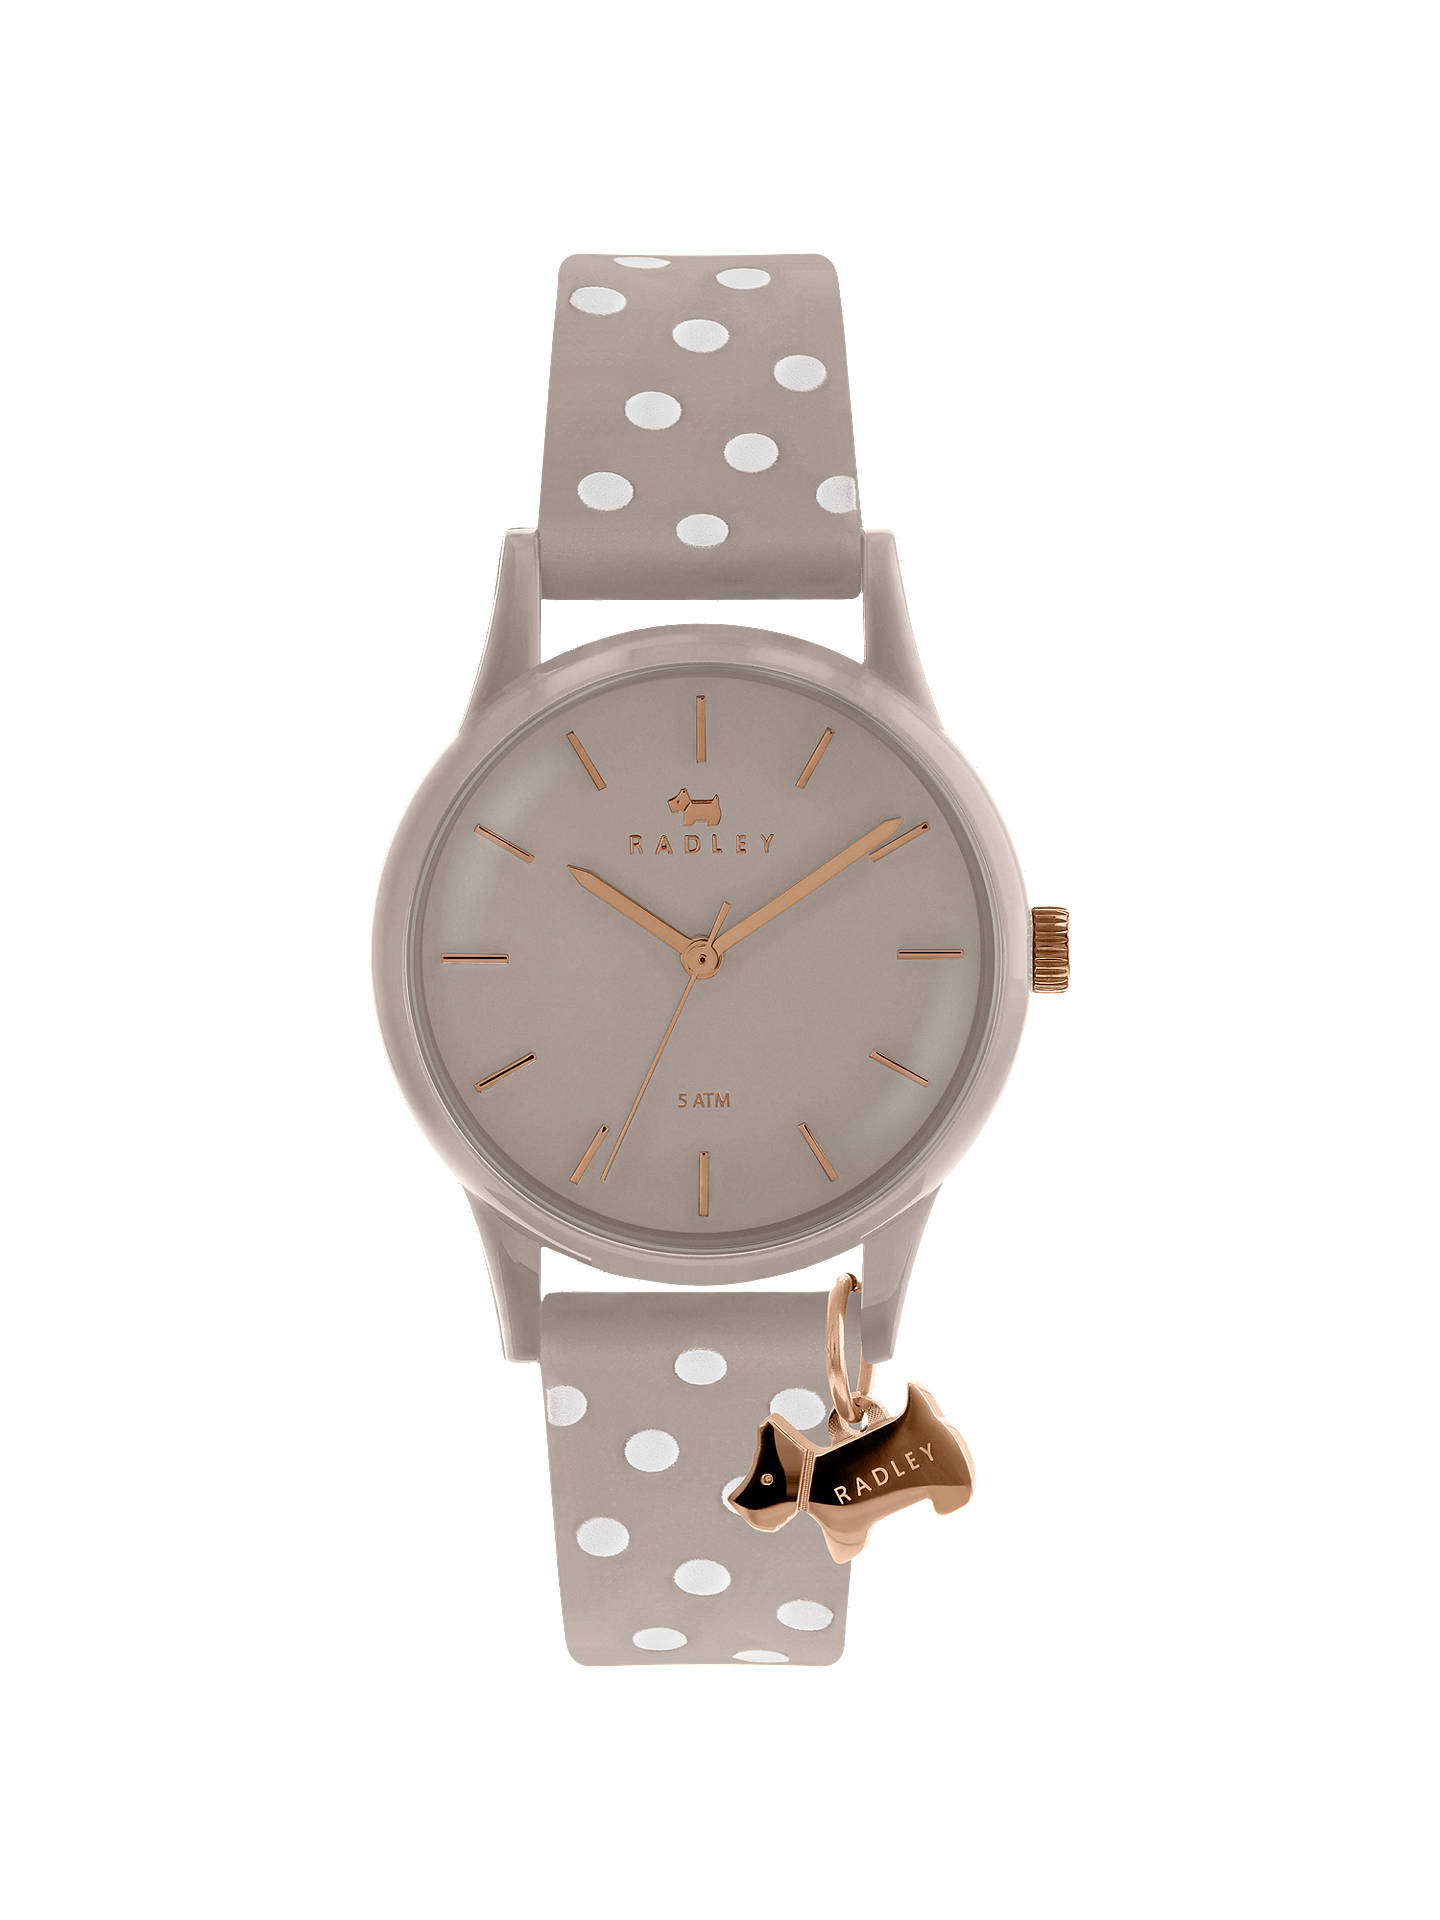 Buy Radley RY2642 Women's Watch It Spotted Leather Strap Watch, Cobweb Online at johnlewis.com